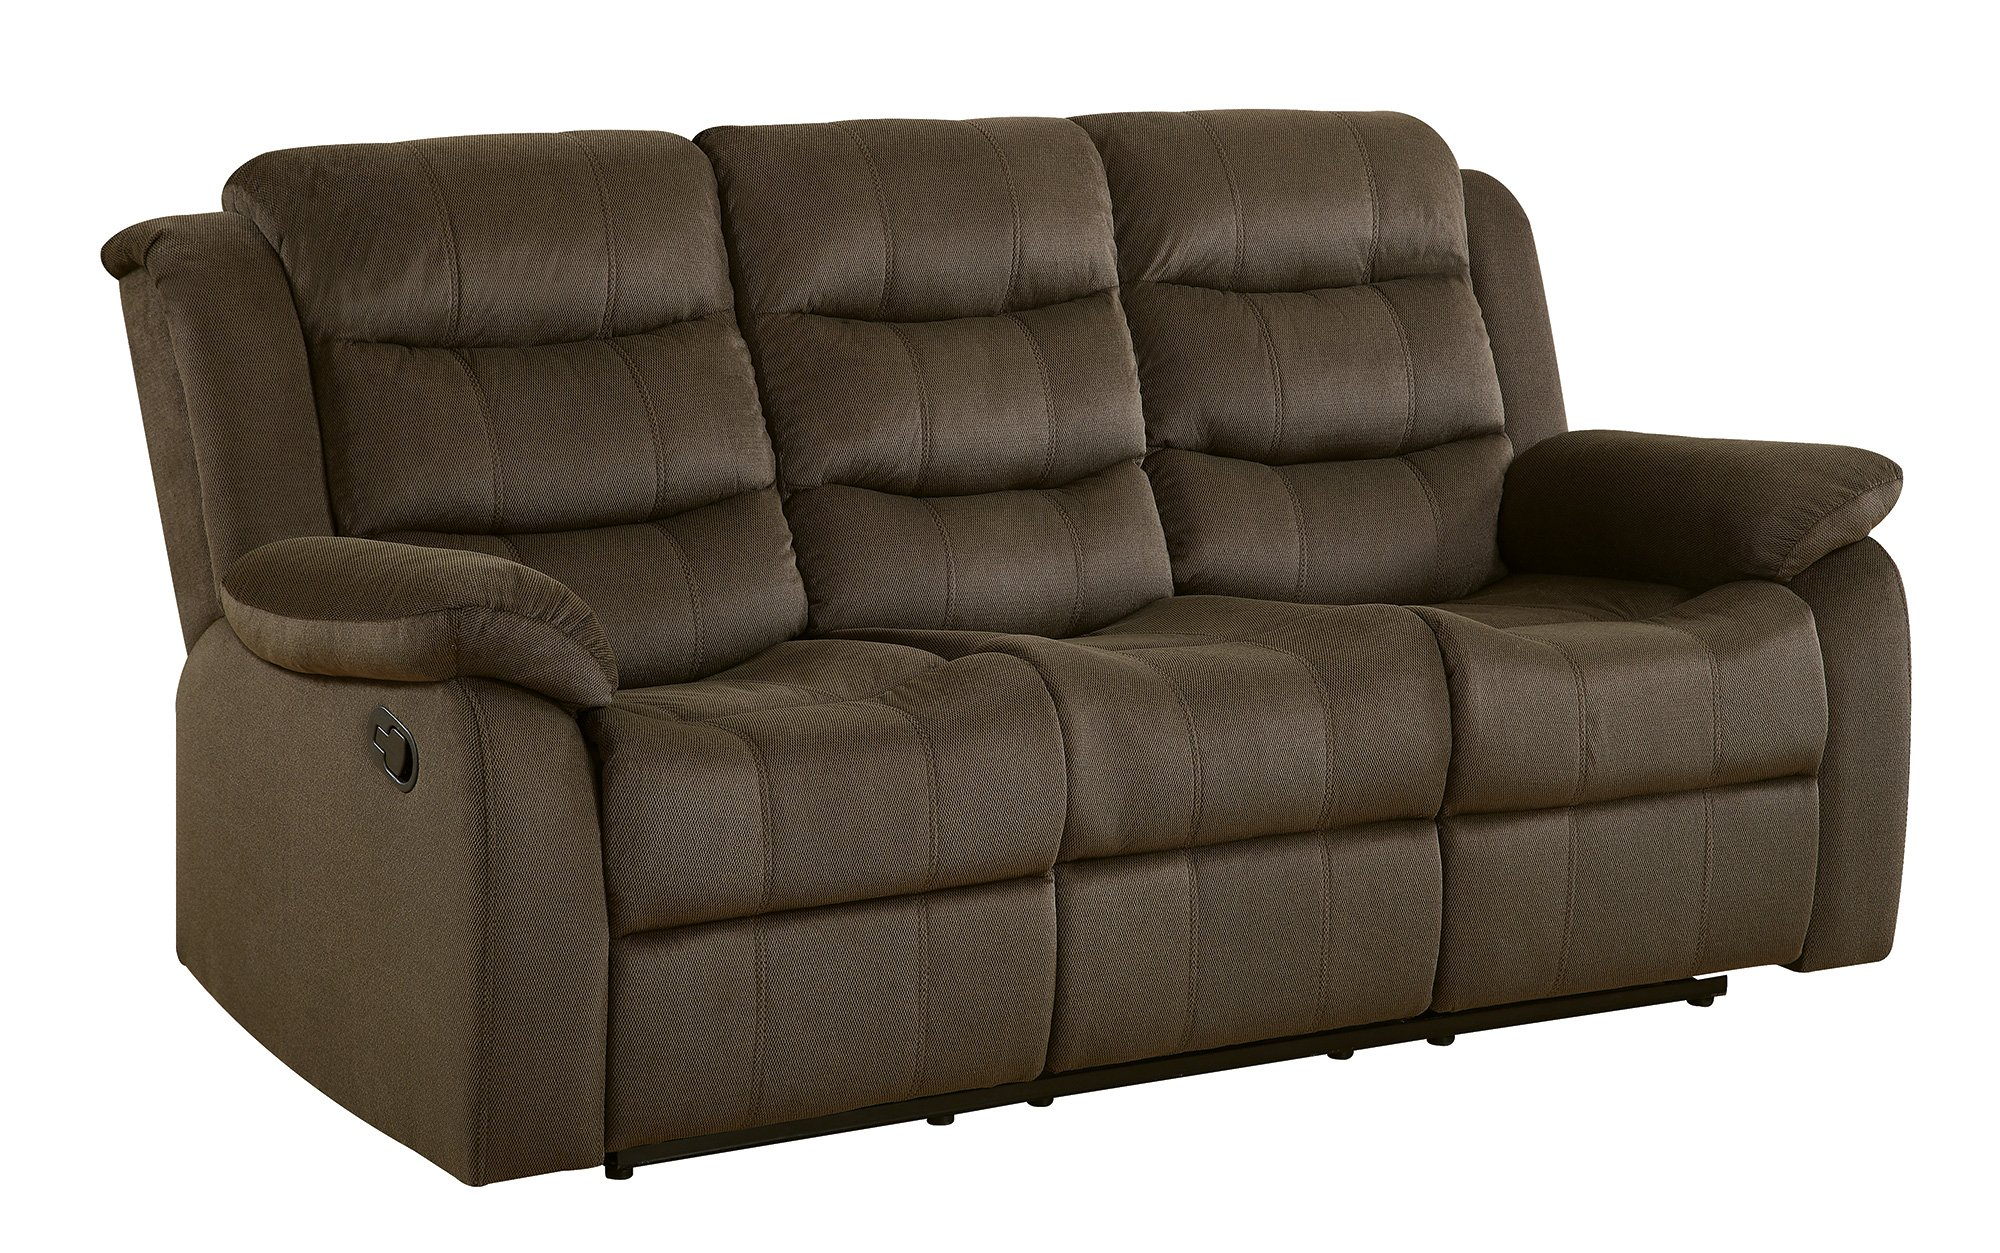 Coaster Home Furnishings 601881 Two-Tone Rodman Motion Collection Motion Sofa, Chocolate